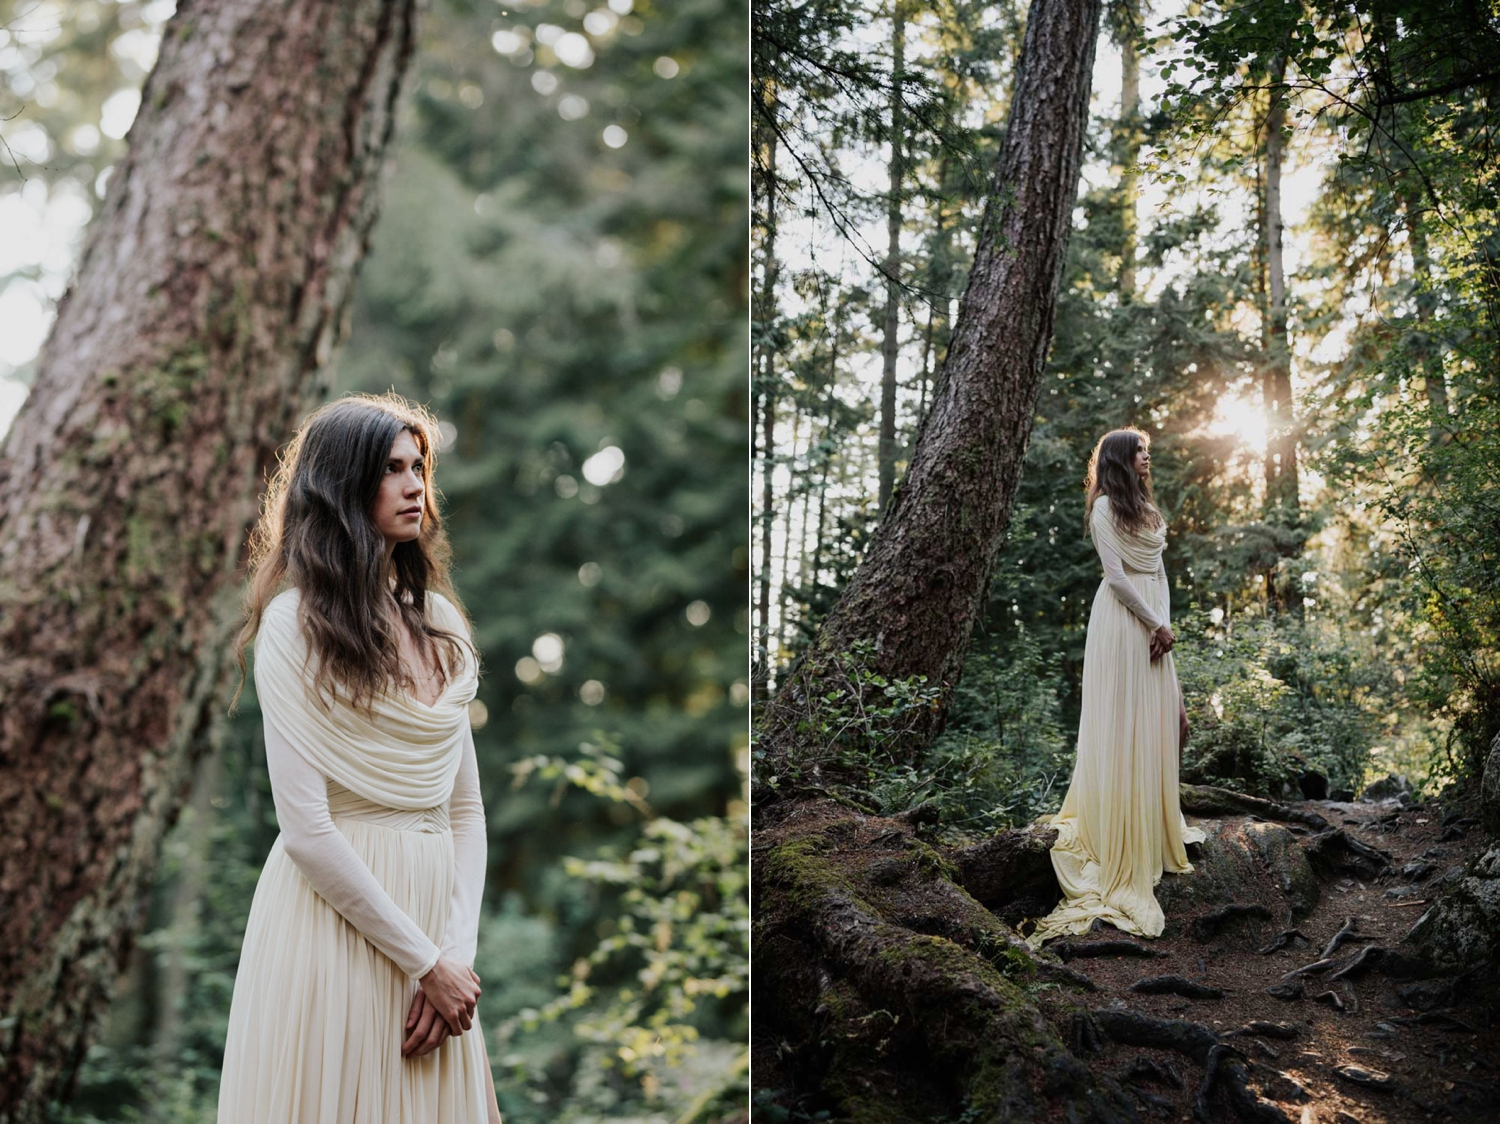 Bride In Camomile Dyed Slow Movement Wedding Dress In North Vancouver Forest